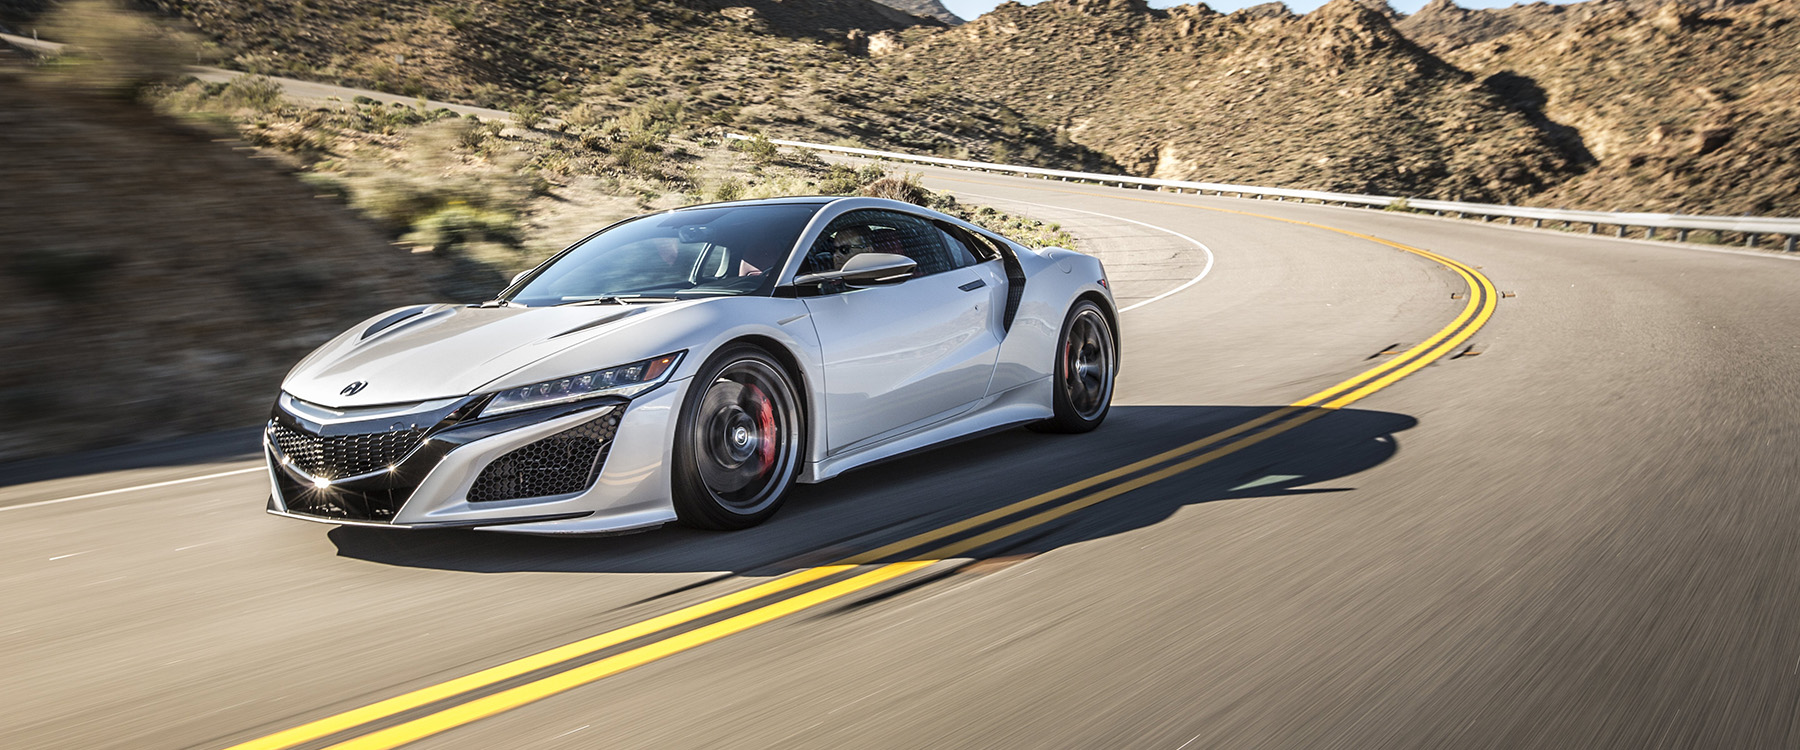 Acura NSX Integrated Dynamics System Comes To Chicago - Acura nsx parts